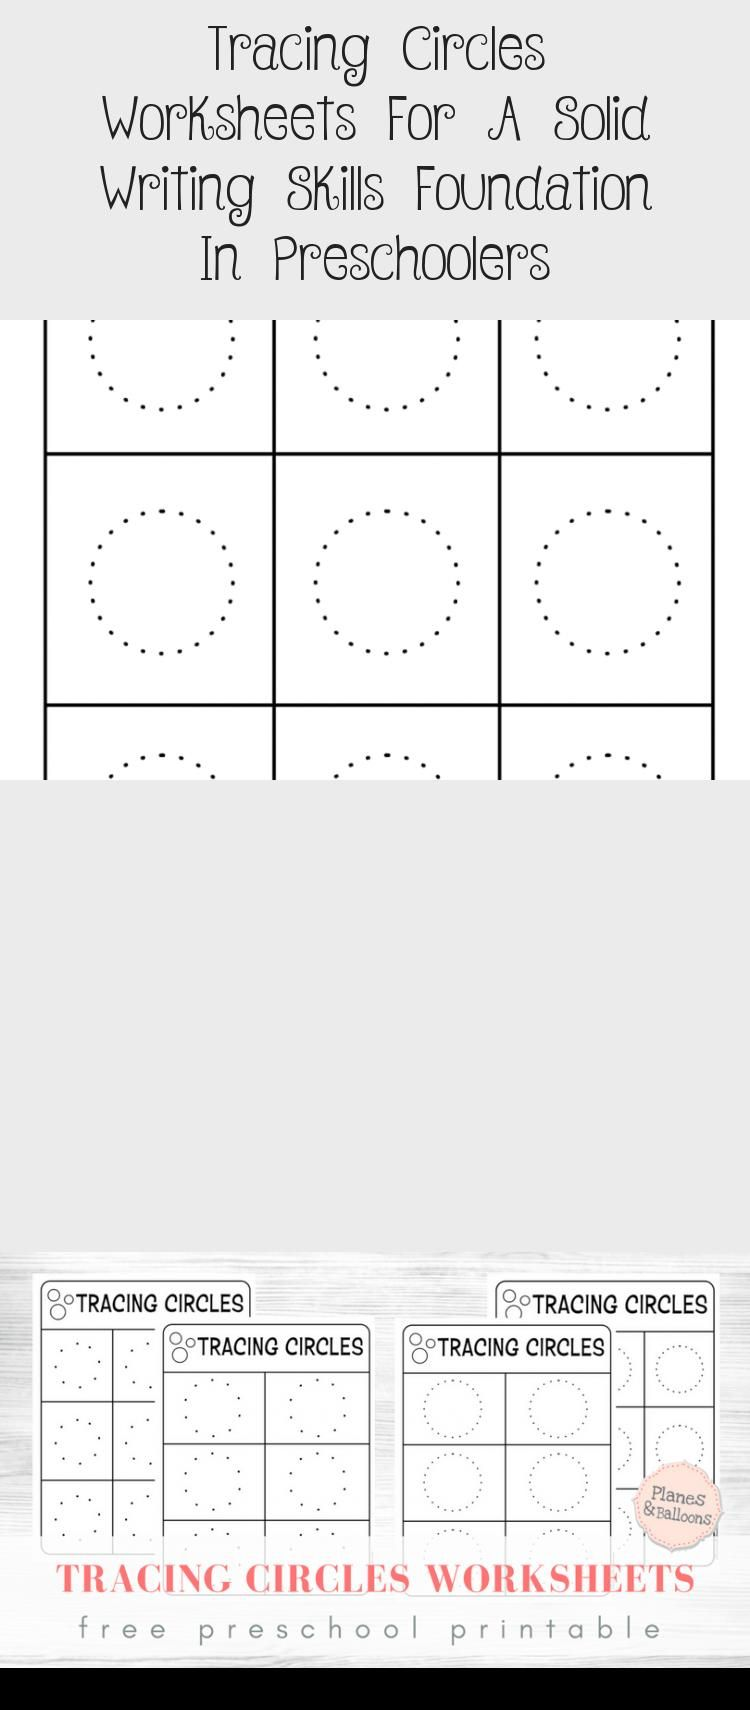 Tracing Circles For Preschool Free Printable Worksheets Get The Free File Today Toysworksheetpreschool Toyswor In 2020 Writing Skills Worksheets Learning To Write